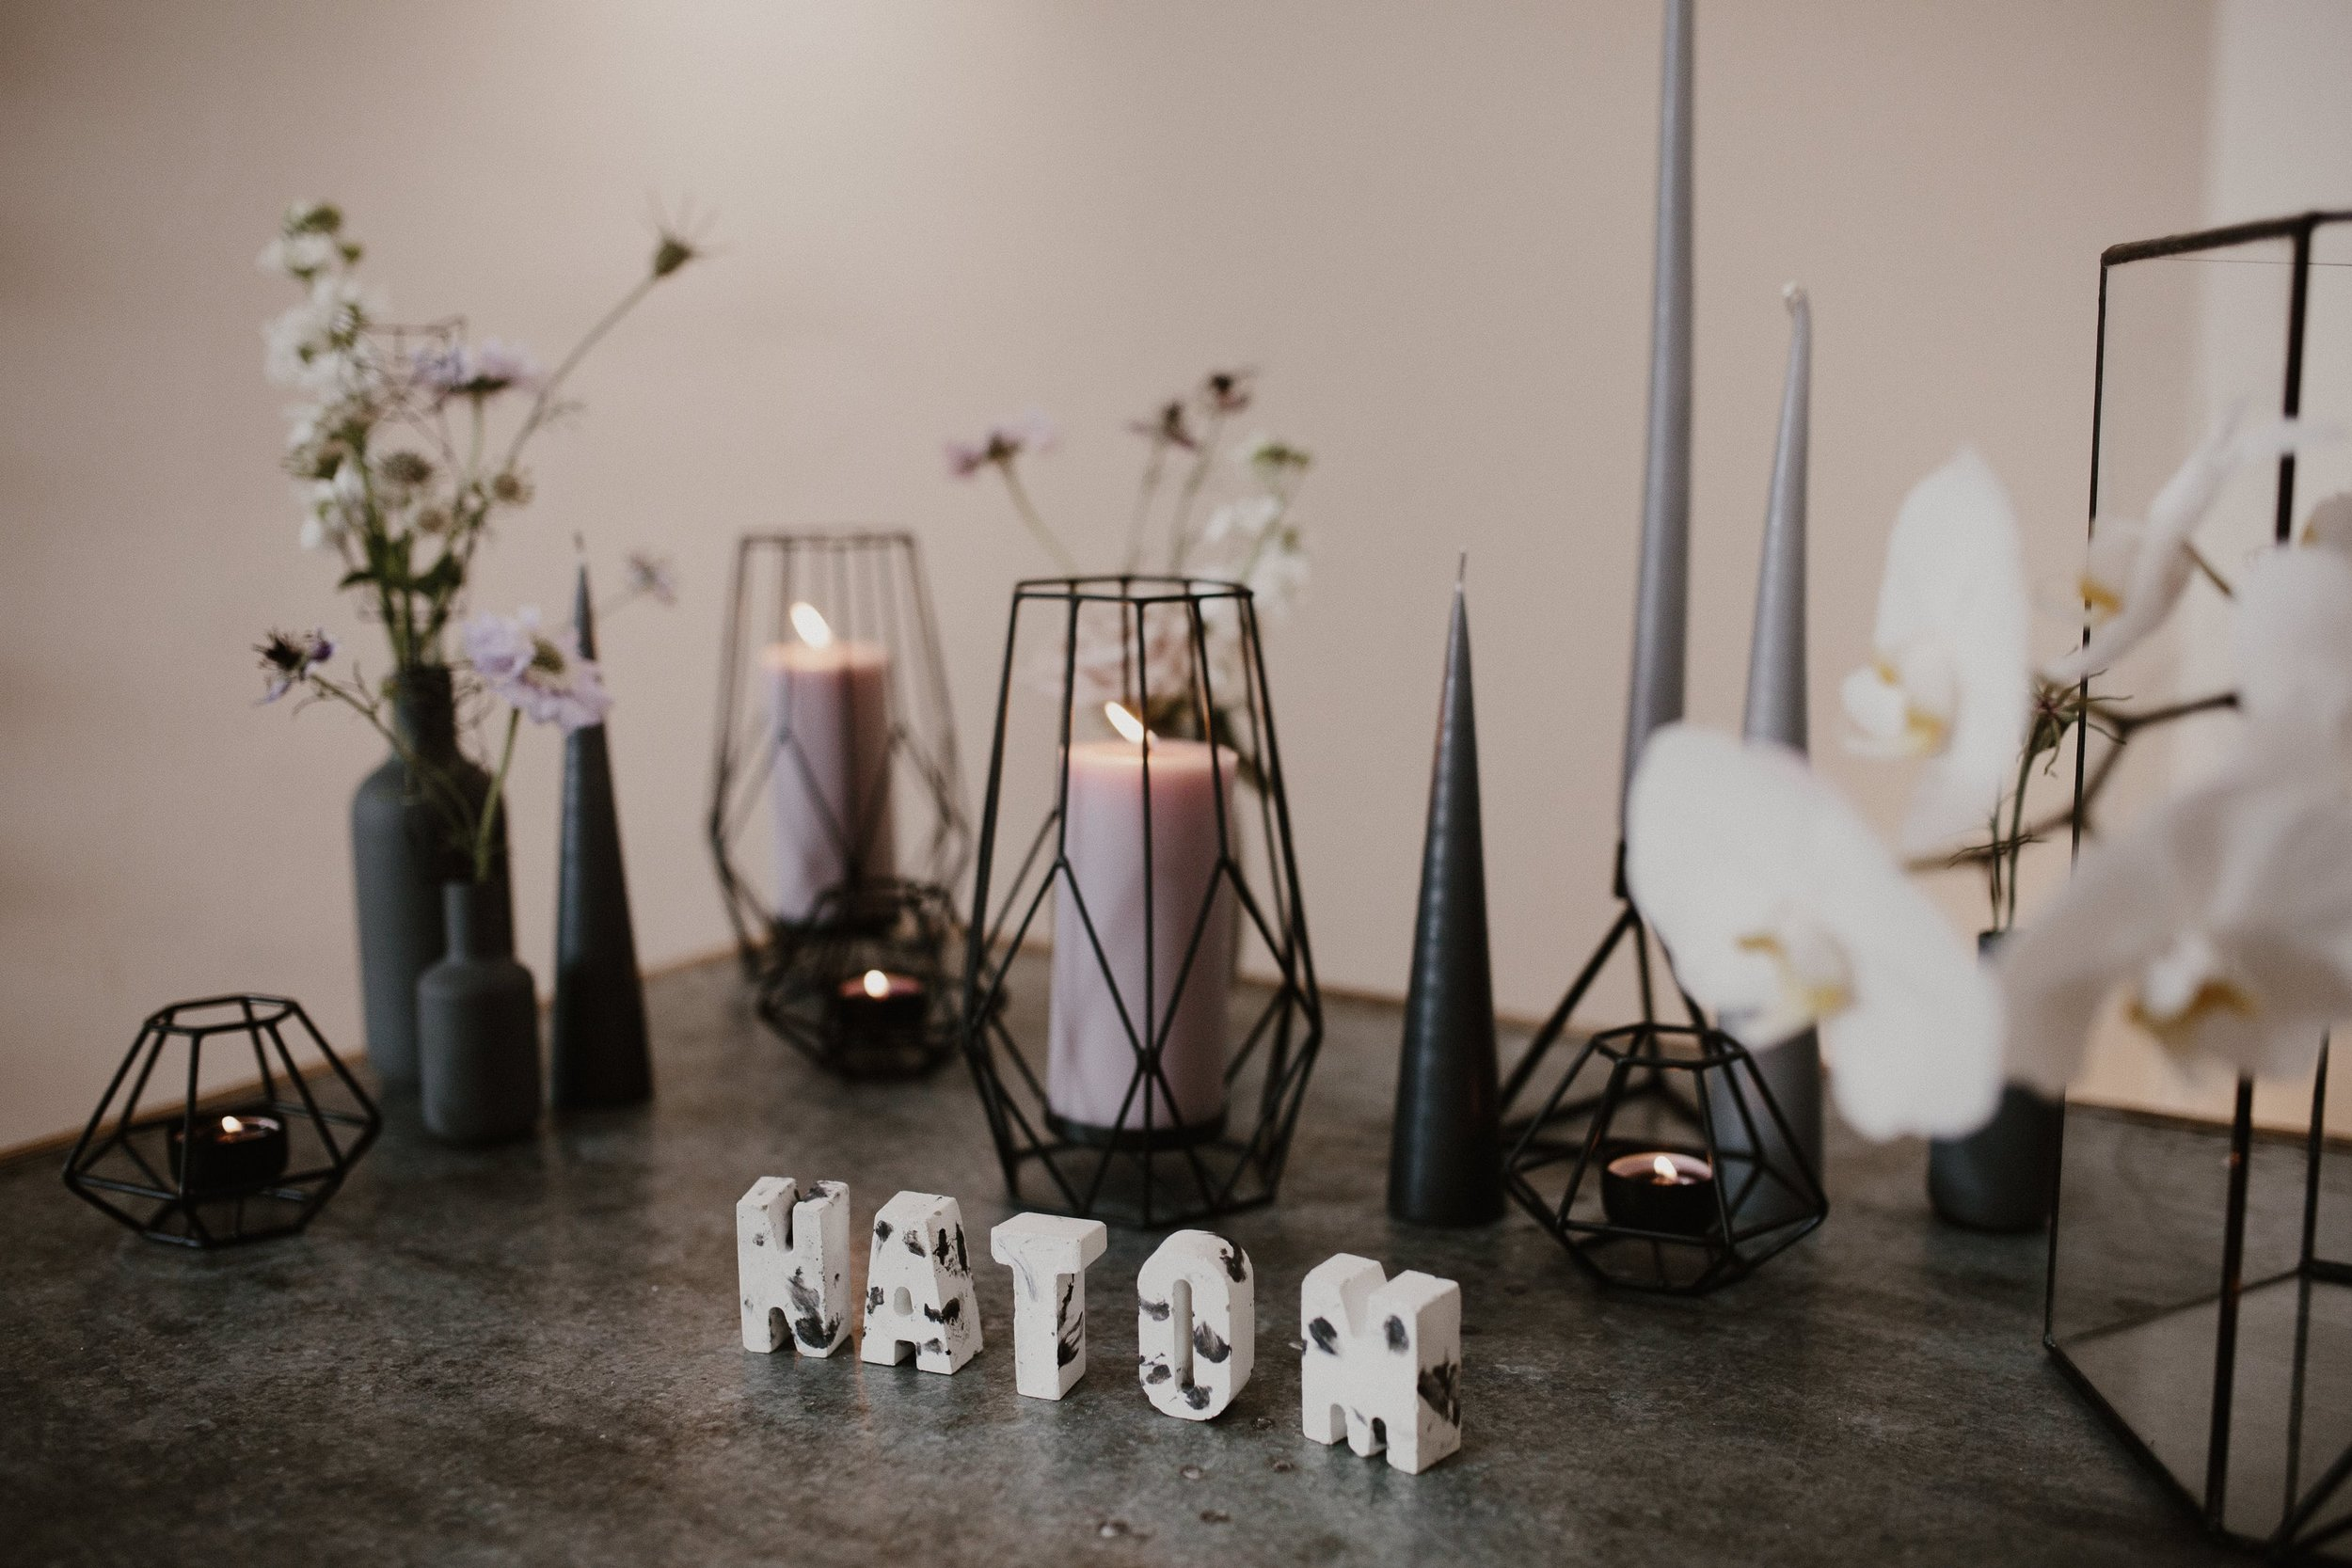 Nat and Tom - 01 - Venue and Details - Sara Lincoln Photography-91-min.jpg